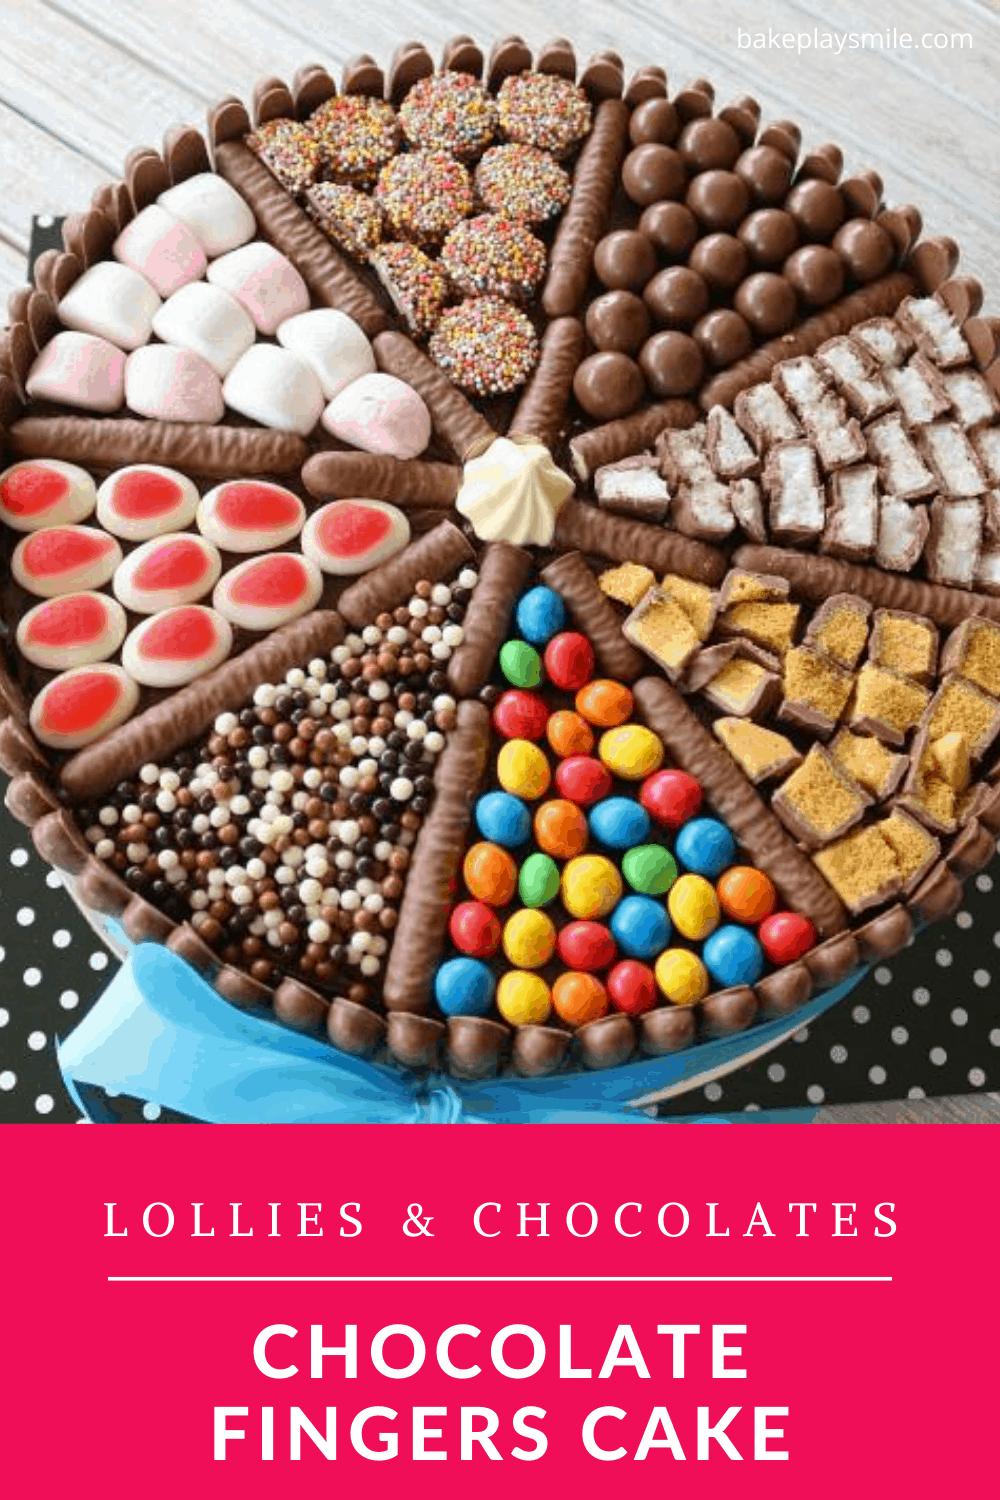 A cake decorated with chocolate fingers, lollies and chocolates.